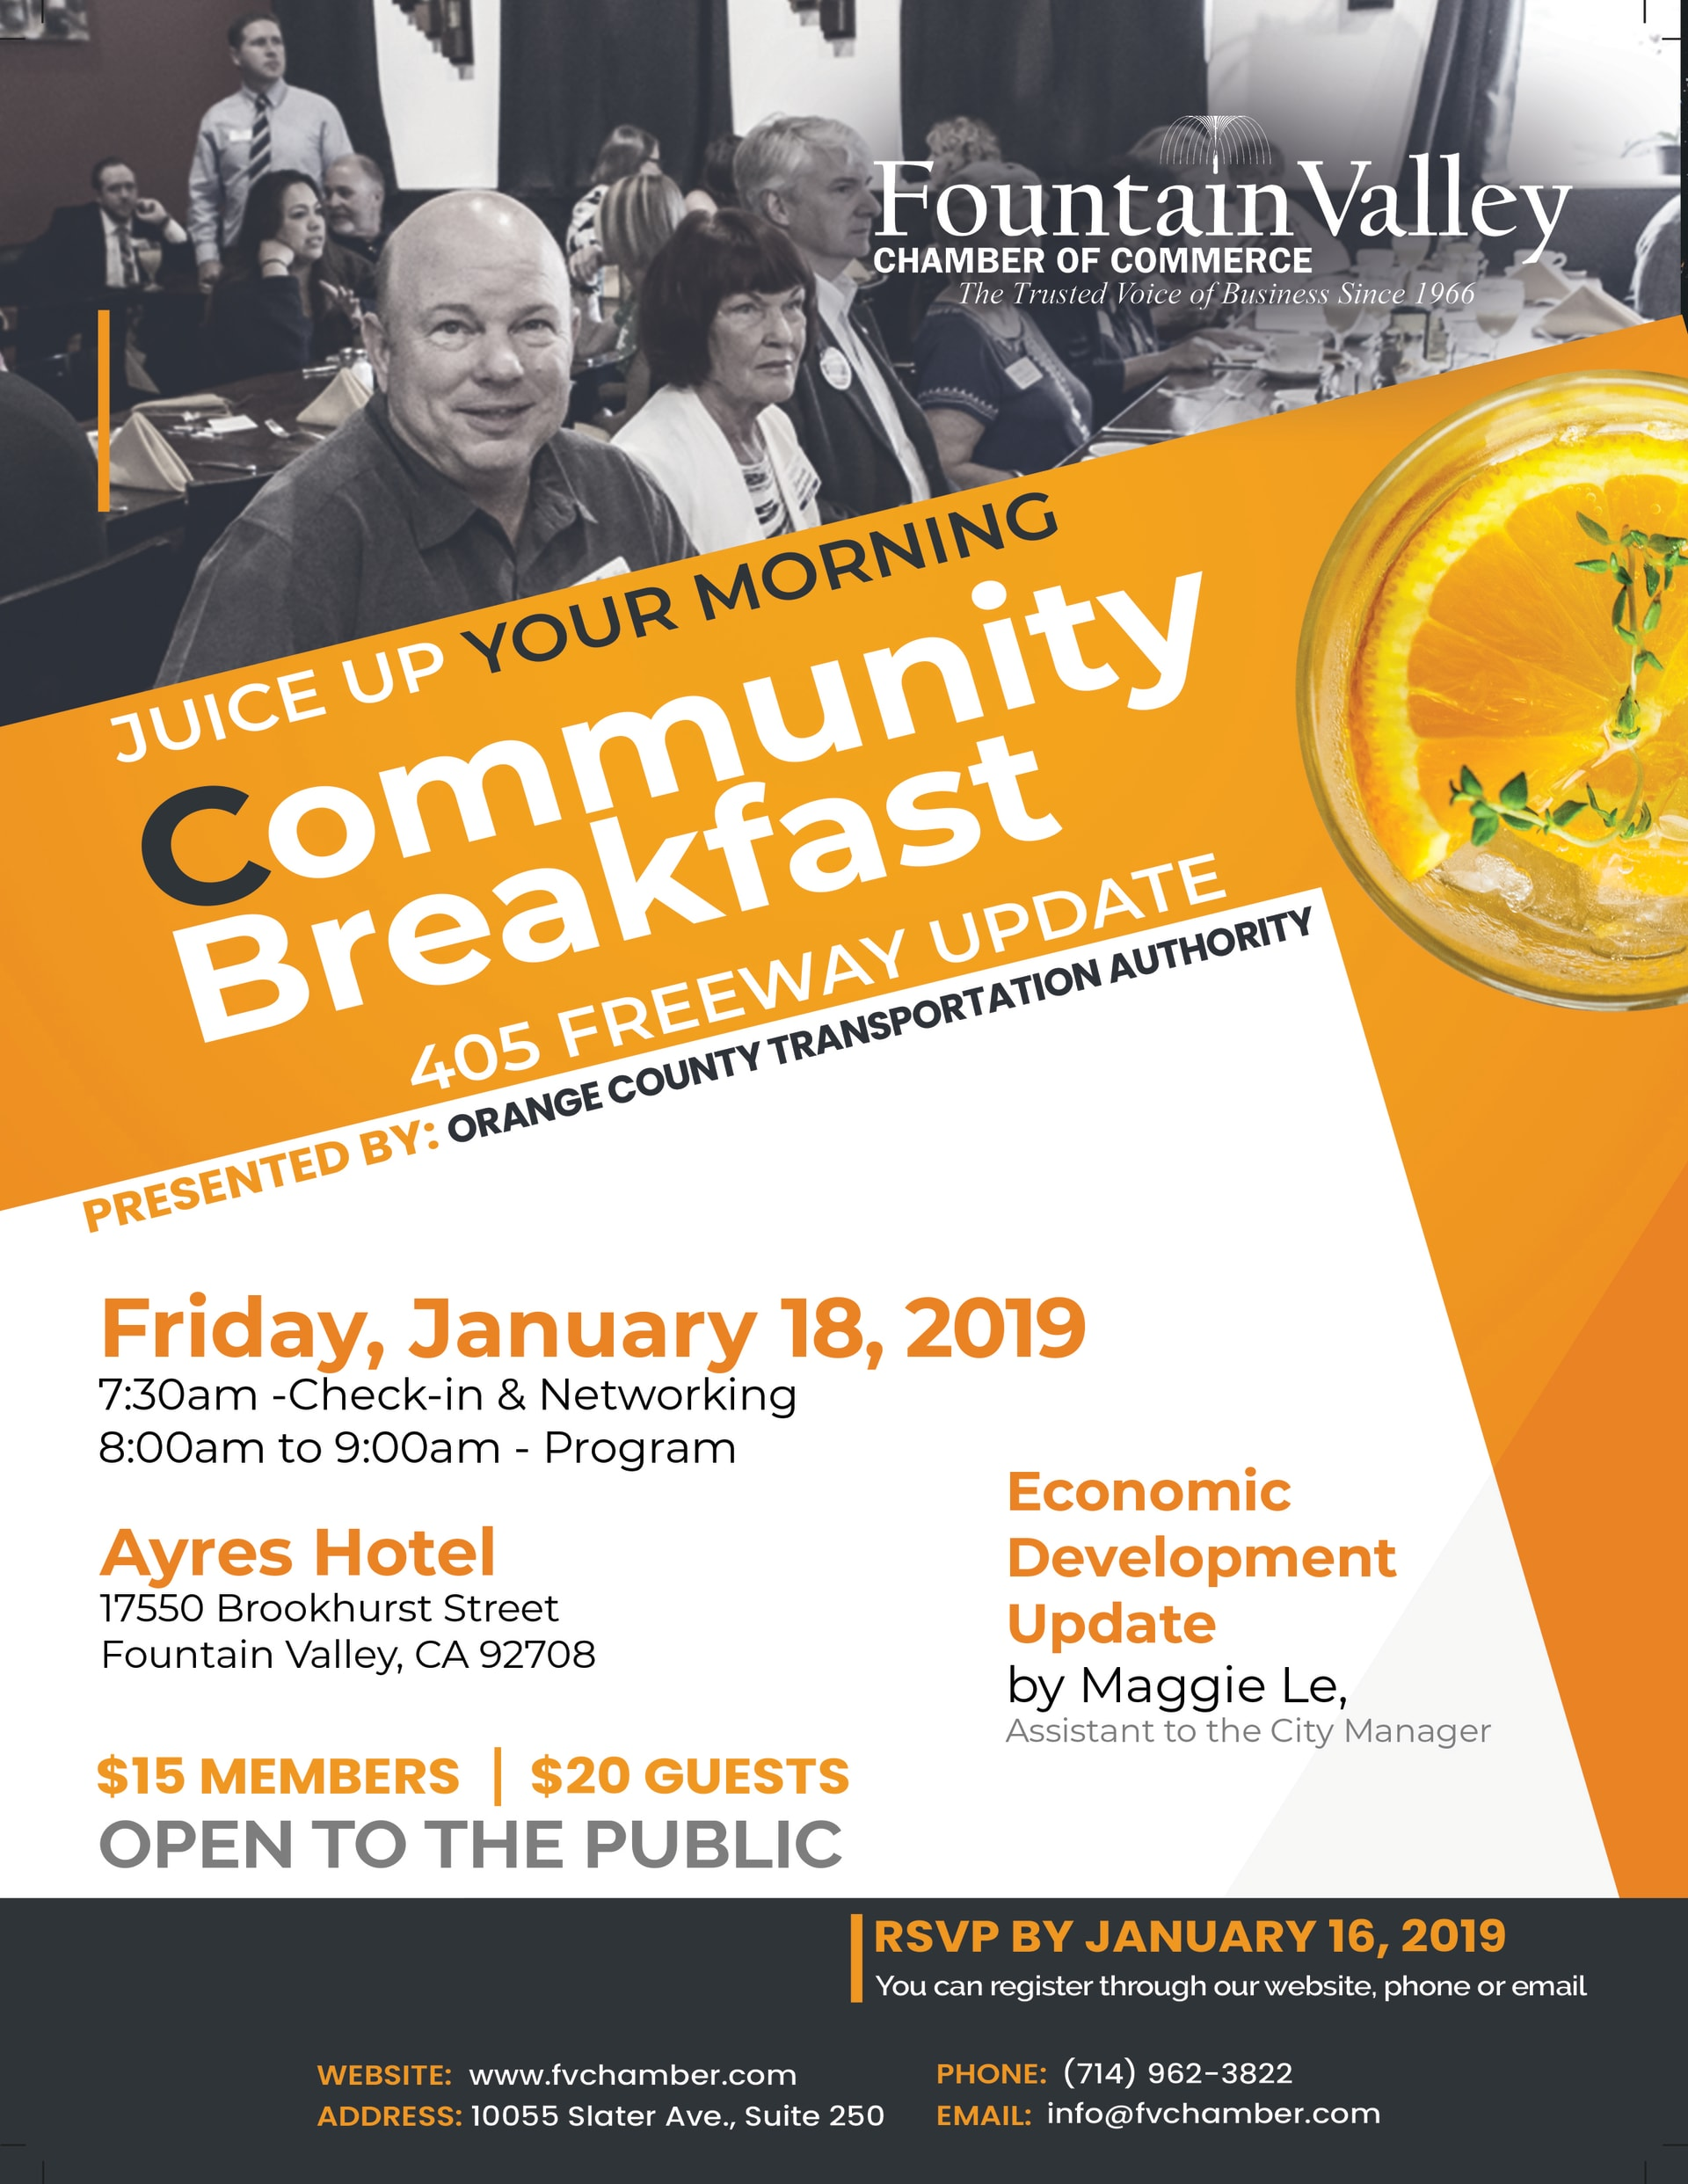 Juice up your morning Community Breakfast Fountain Valley